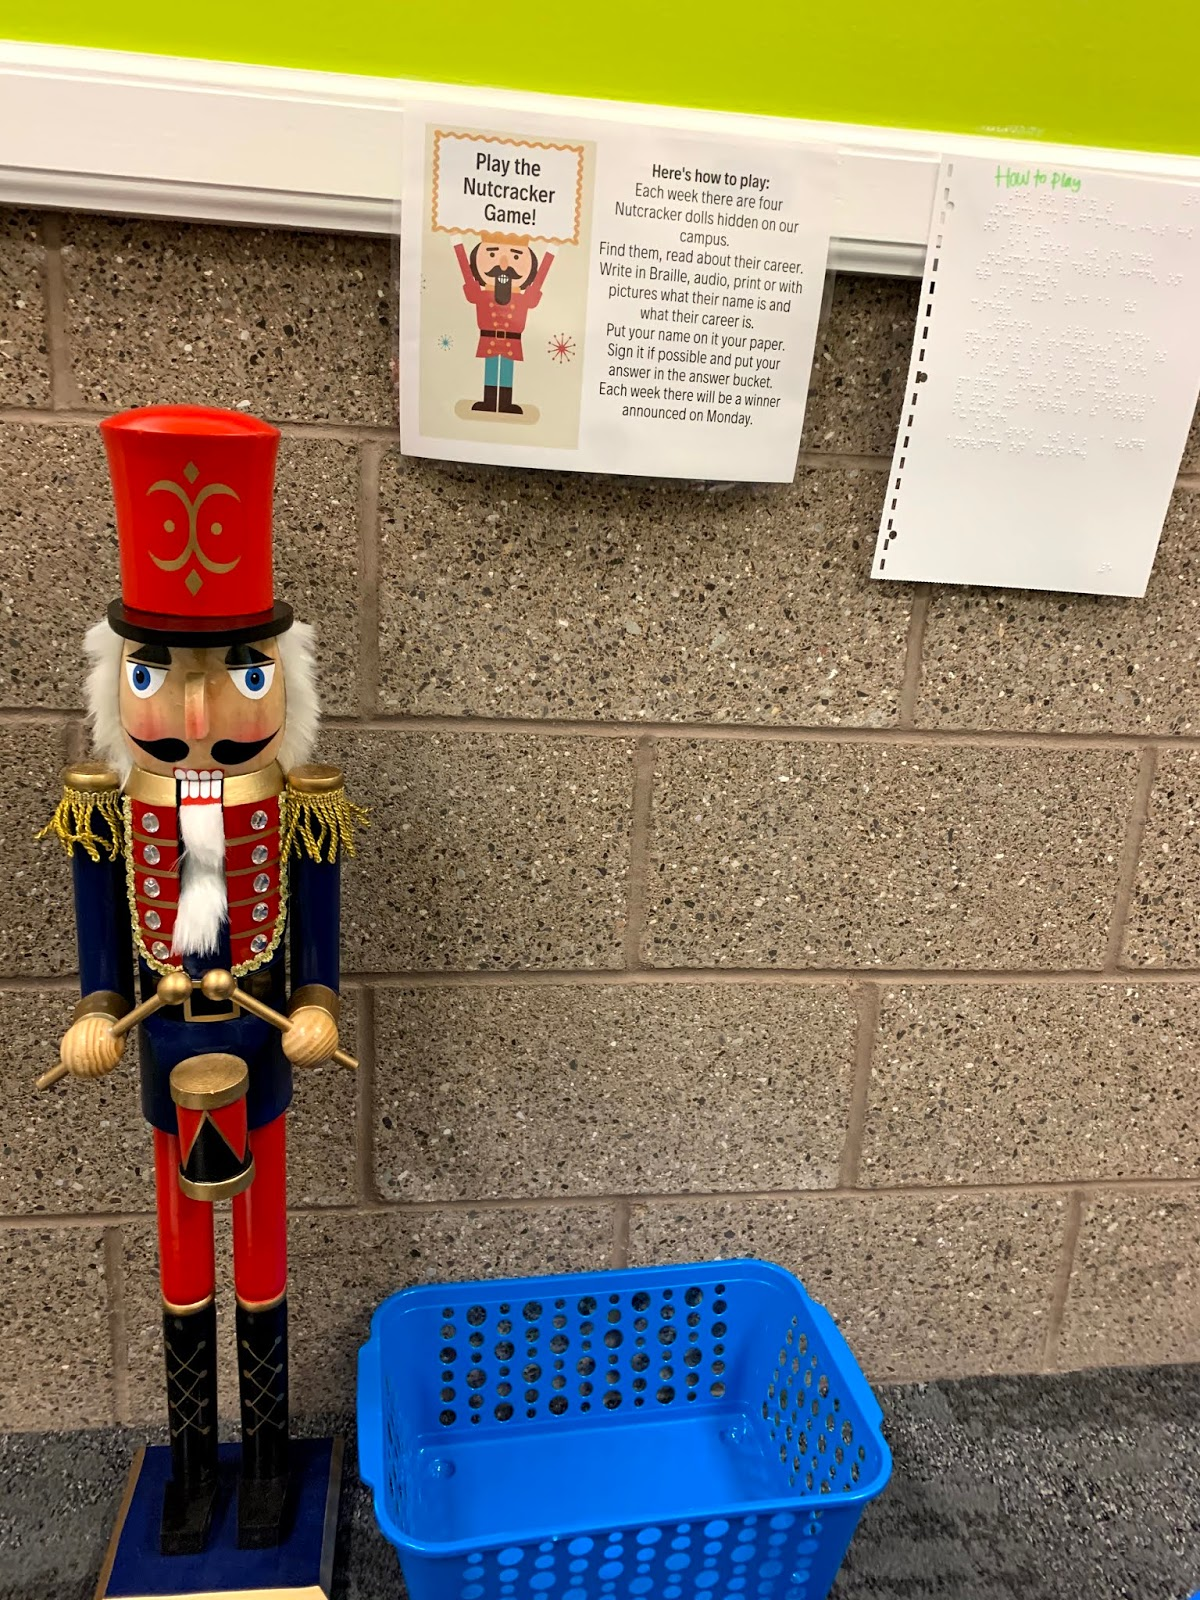 a large traditional Nutcracker doll with a basket and a game sign on how to play the game behind it.